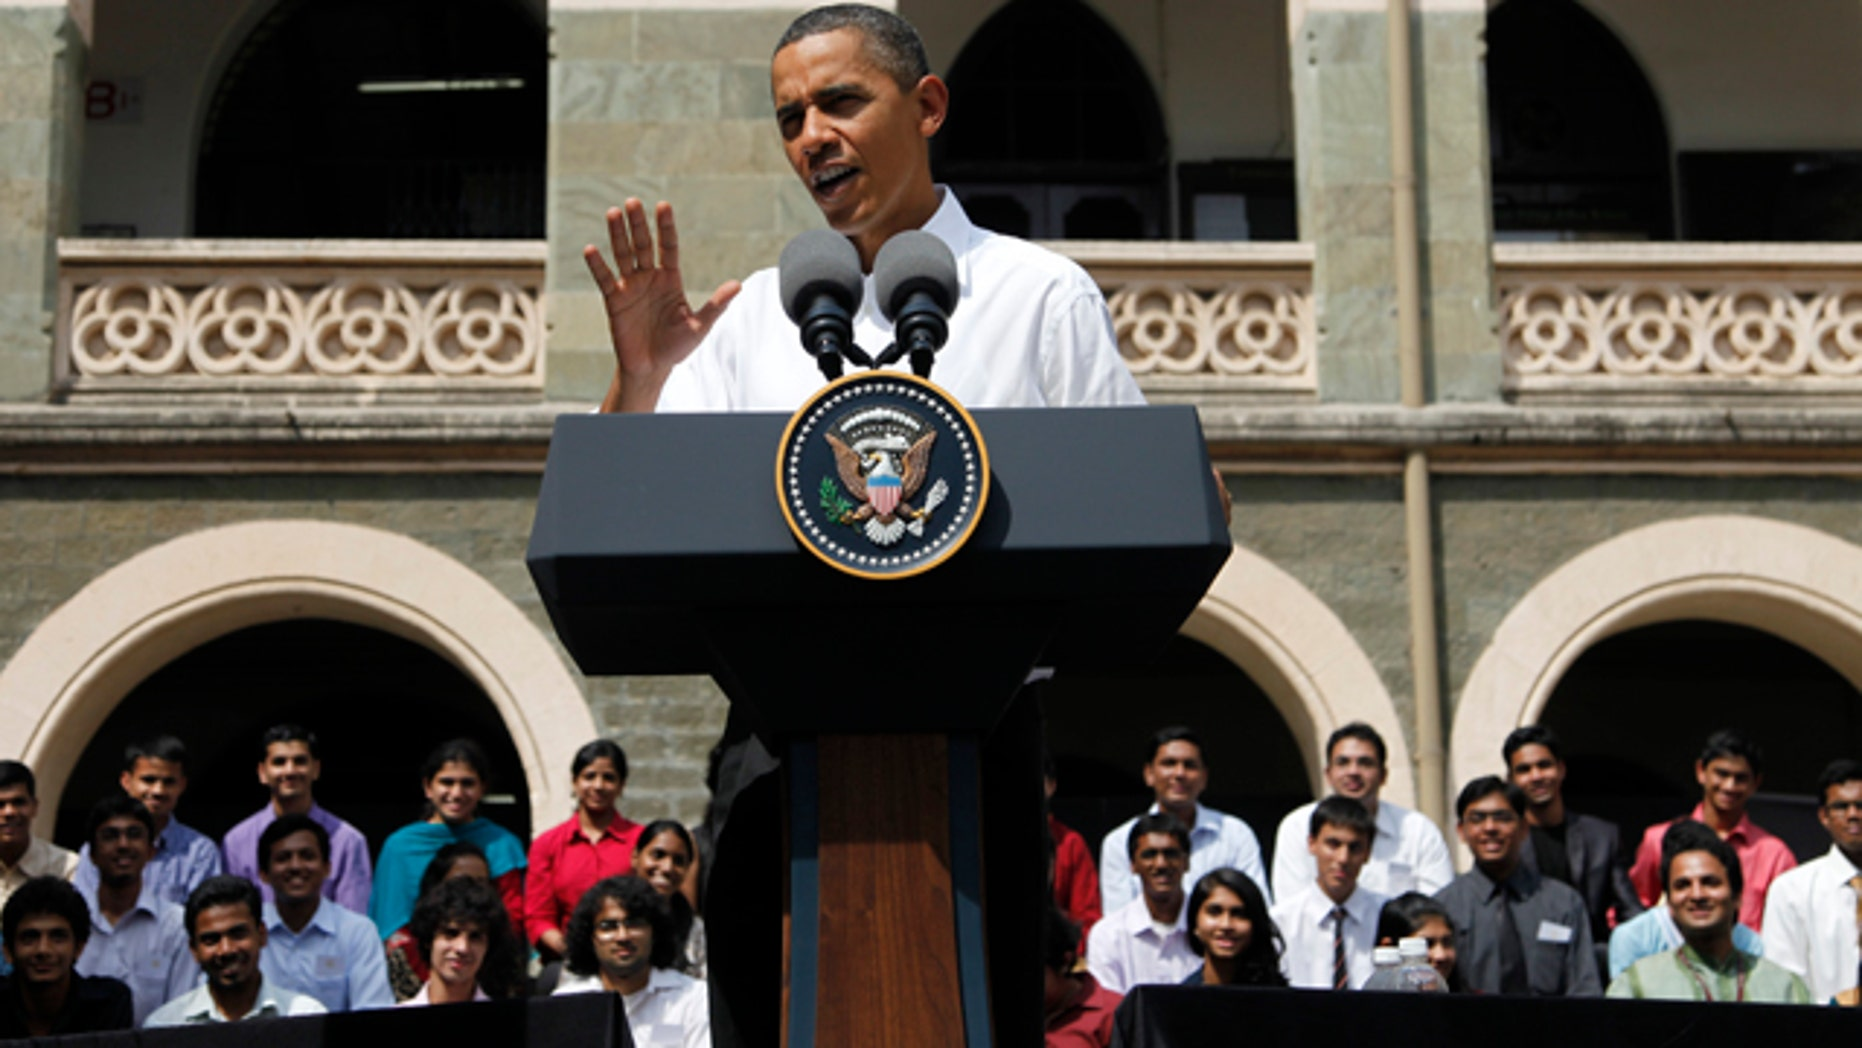 Nov. 7: President Obama gestures during a town hall meeting with students at St. Xavier's College in Mumbai.